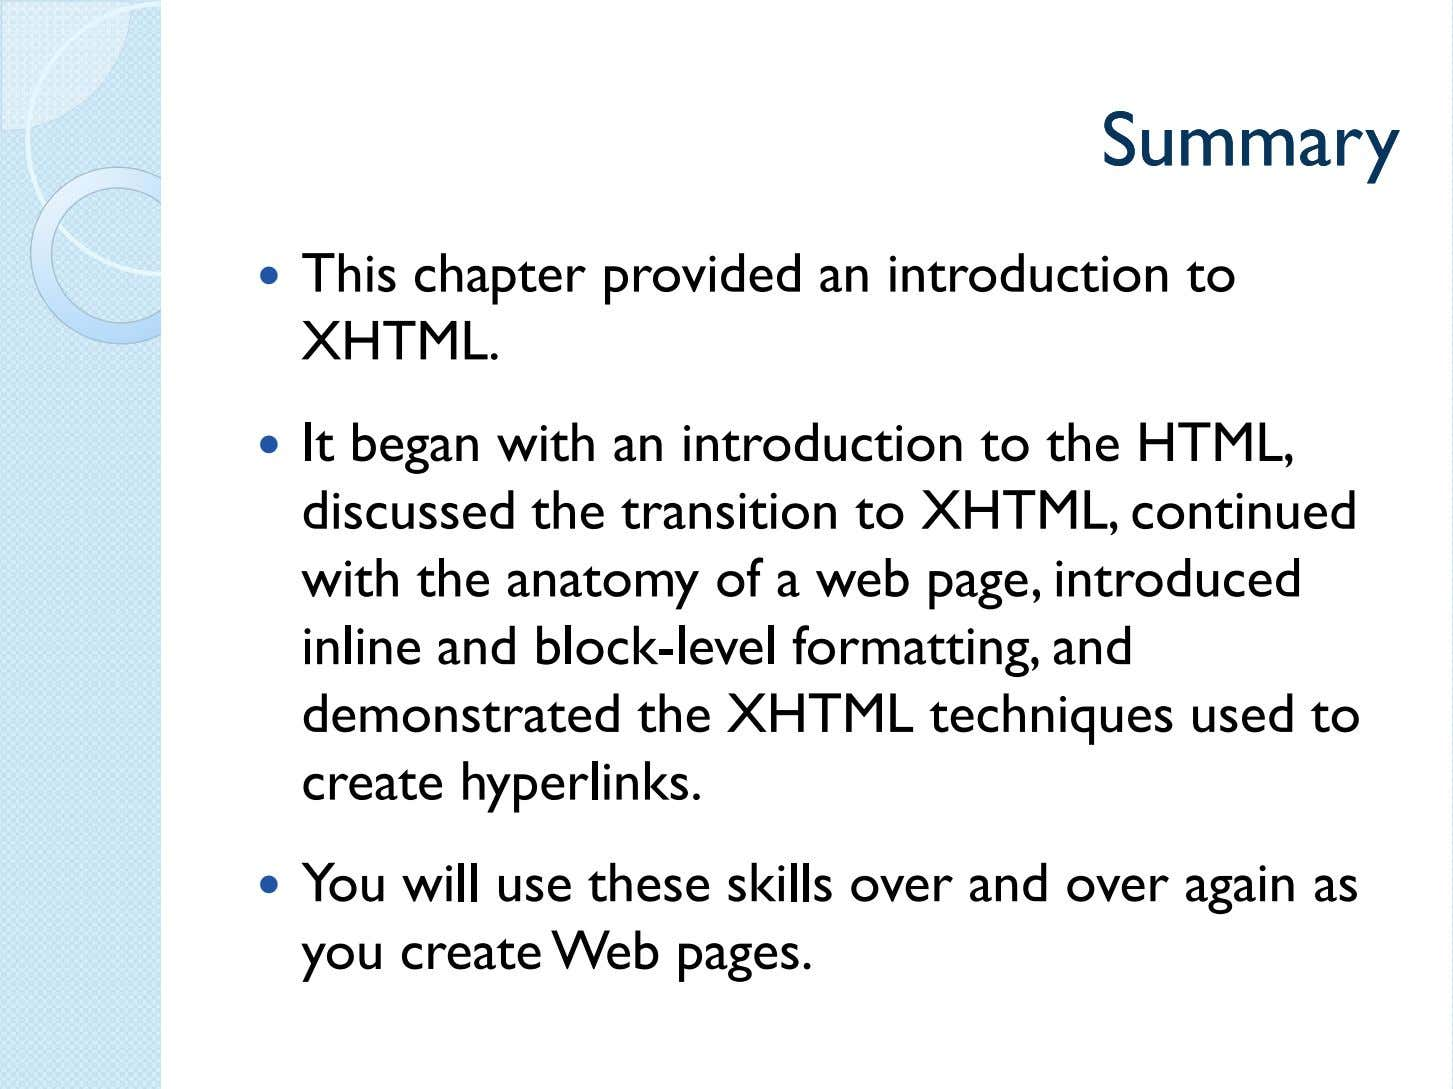 SummarySummary This chapter provided an introduction to XHTML. It began with an introduction to the